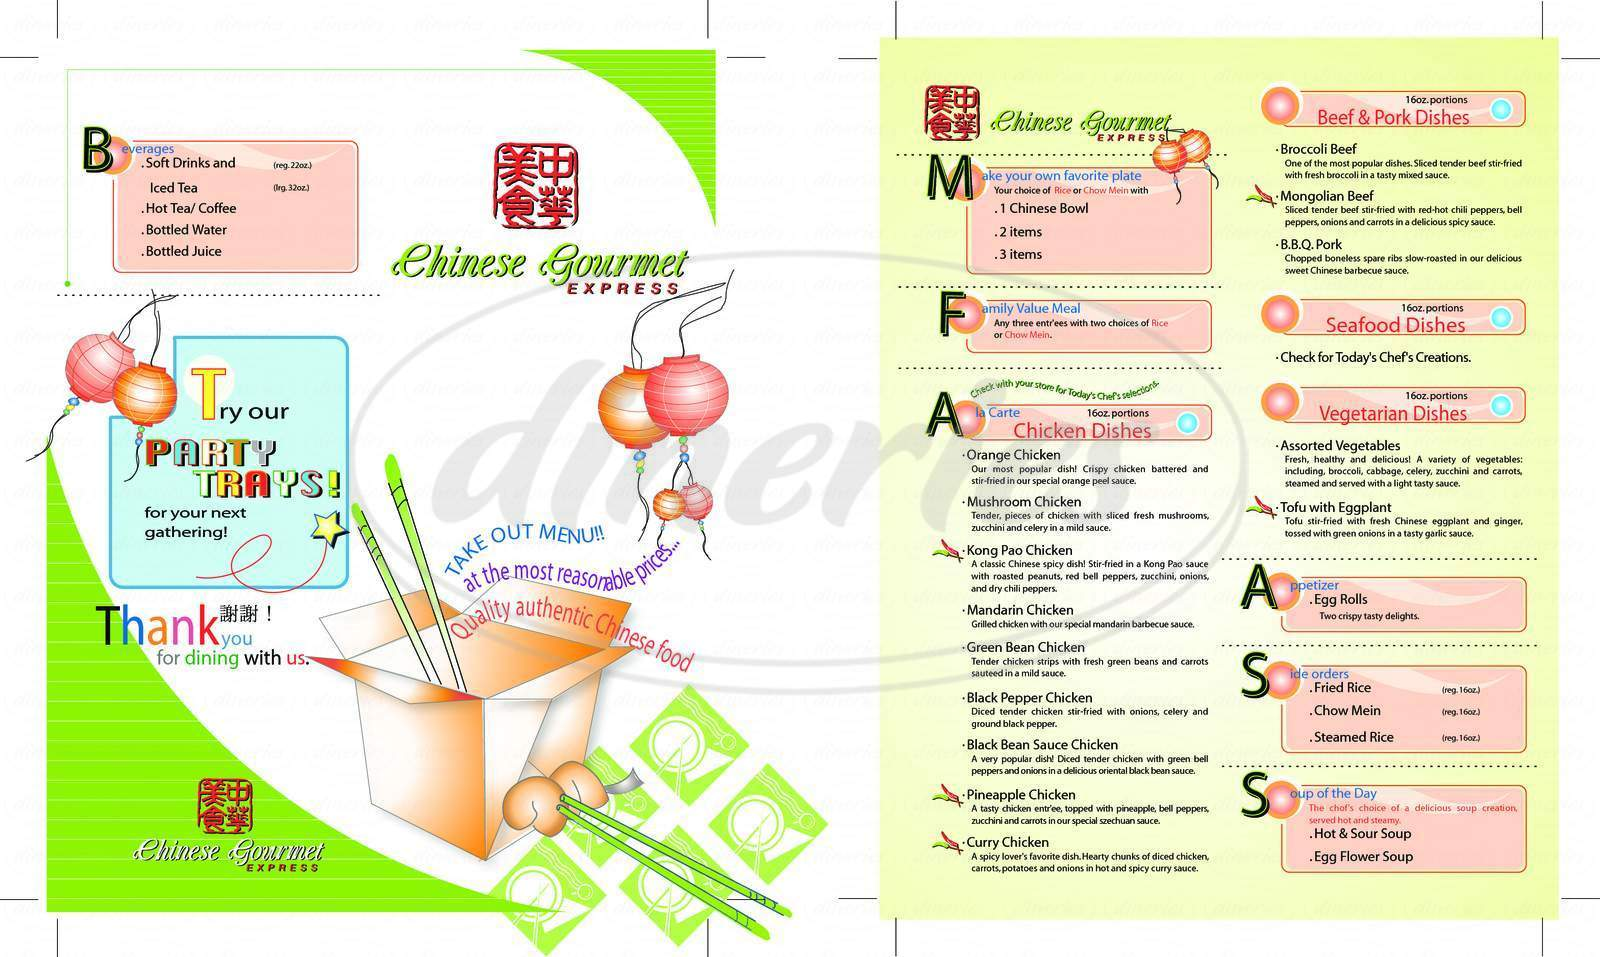 menu for Chinese Gourmet Express